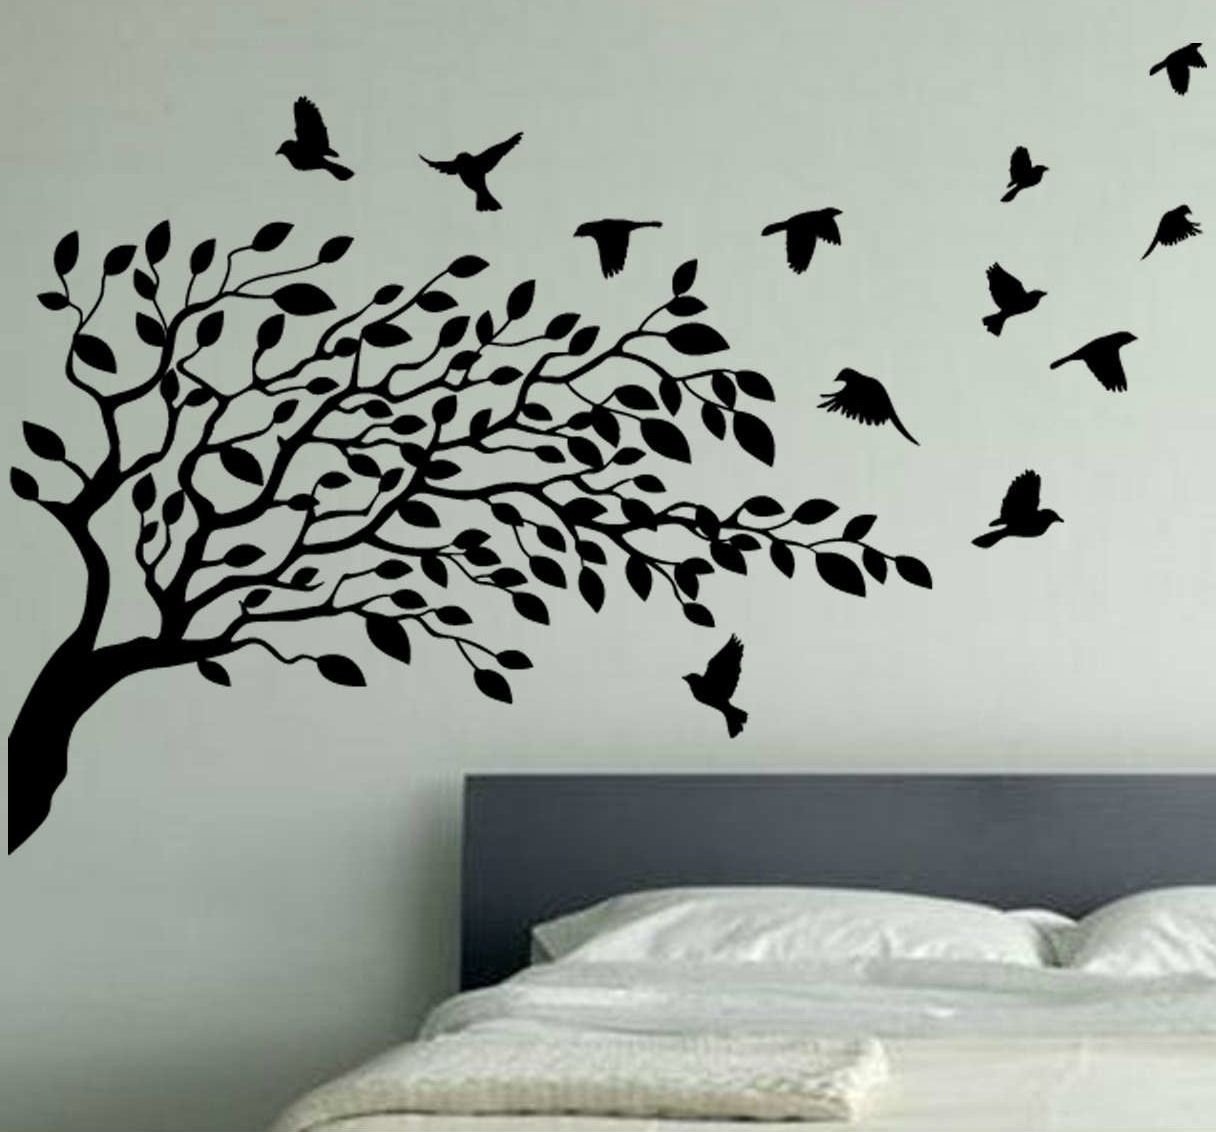 Wallpaper Wall Decals Stickers Art Vinyl Removable Birdcage Bird ... for Wall Sticker Tree Silhouette  174mzq